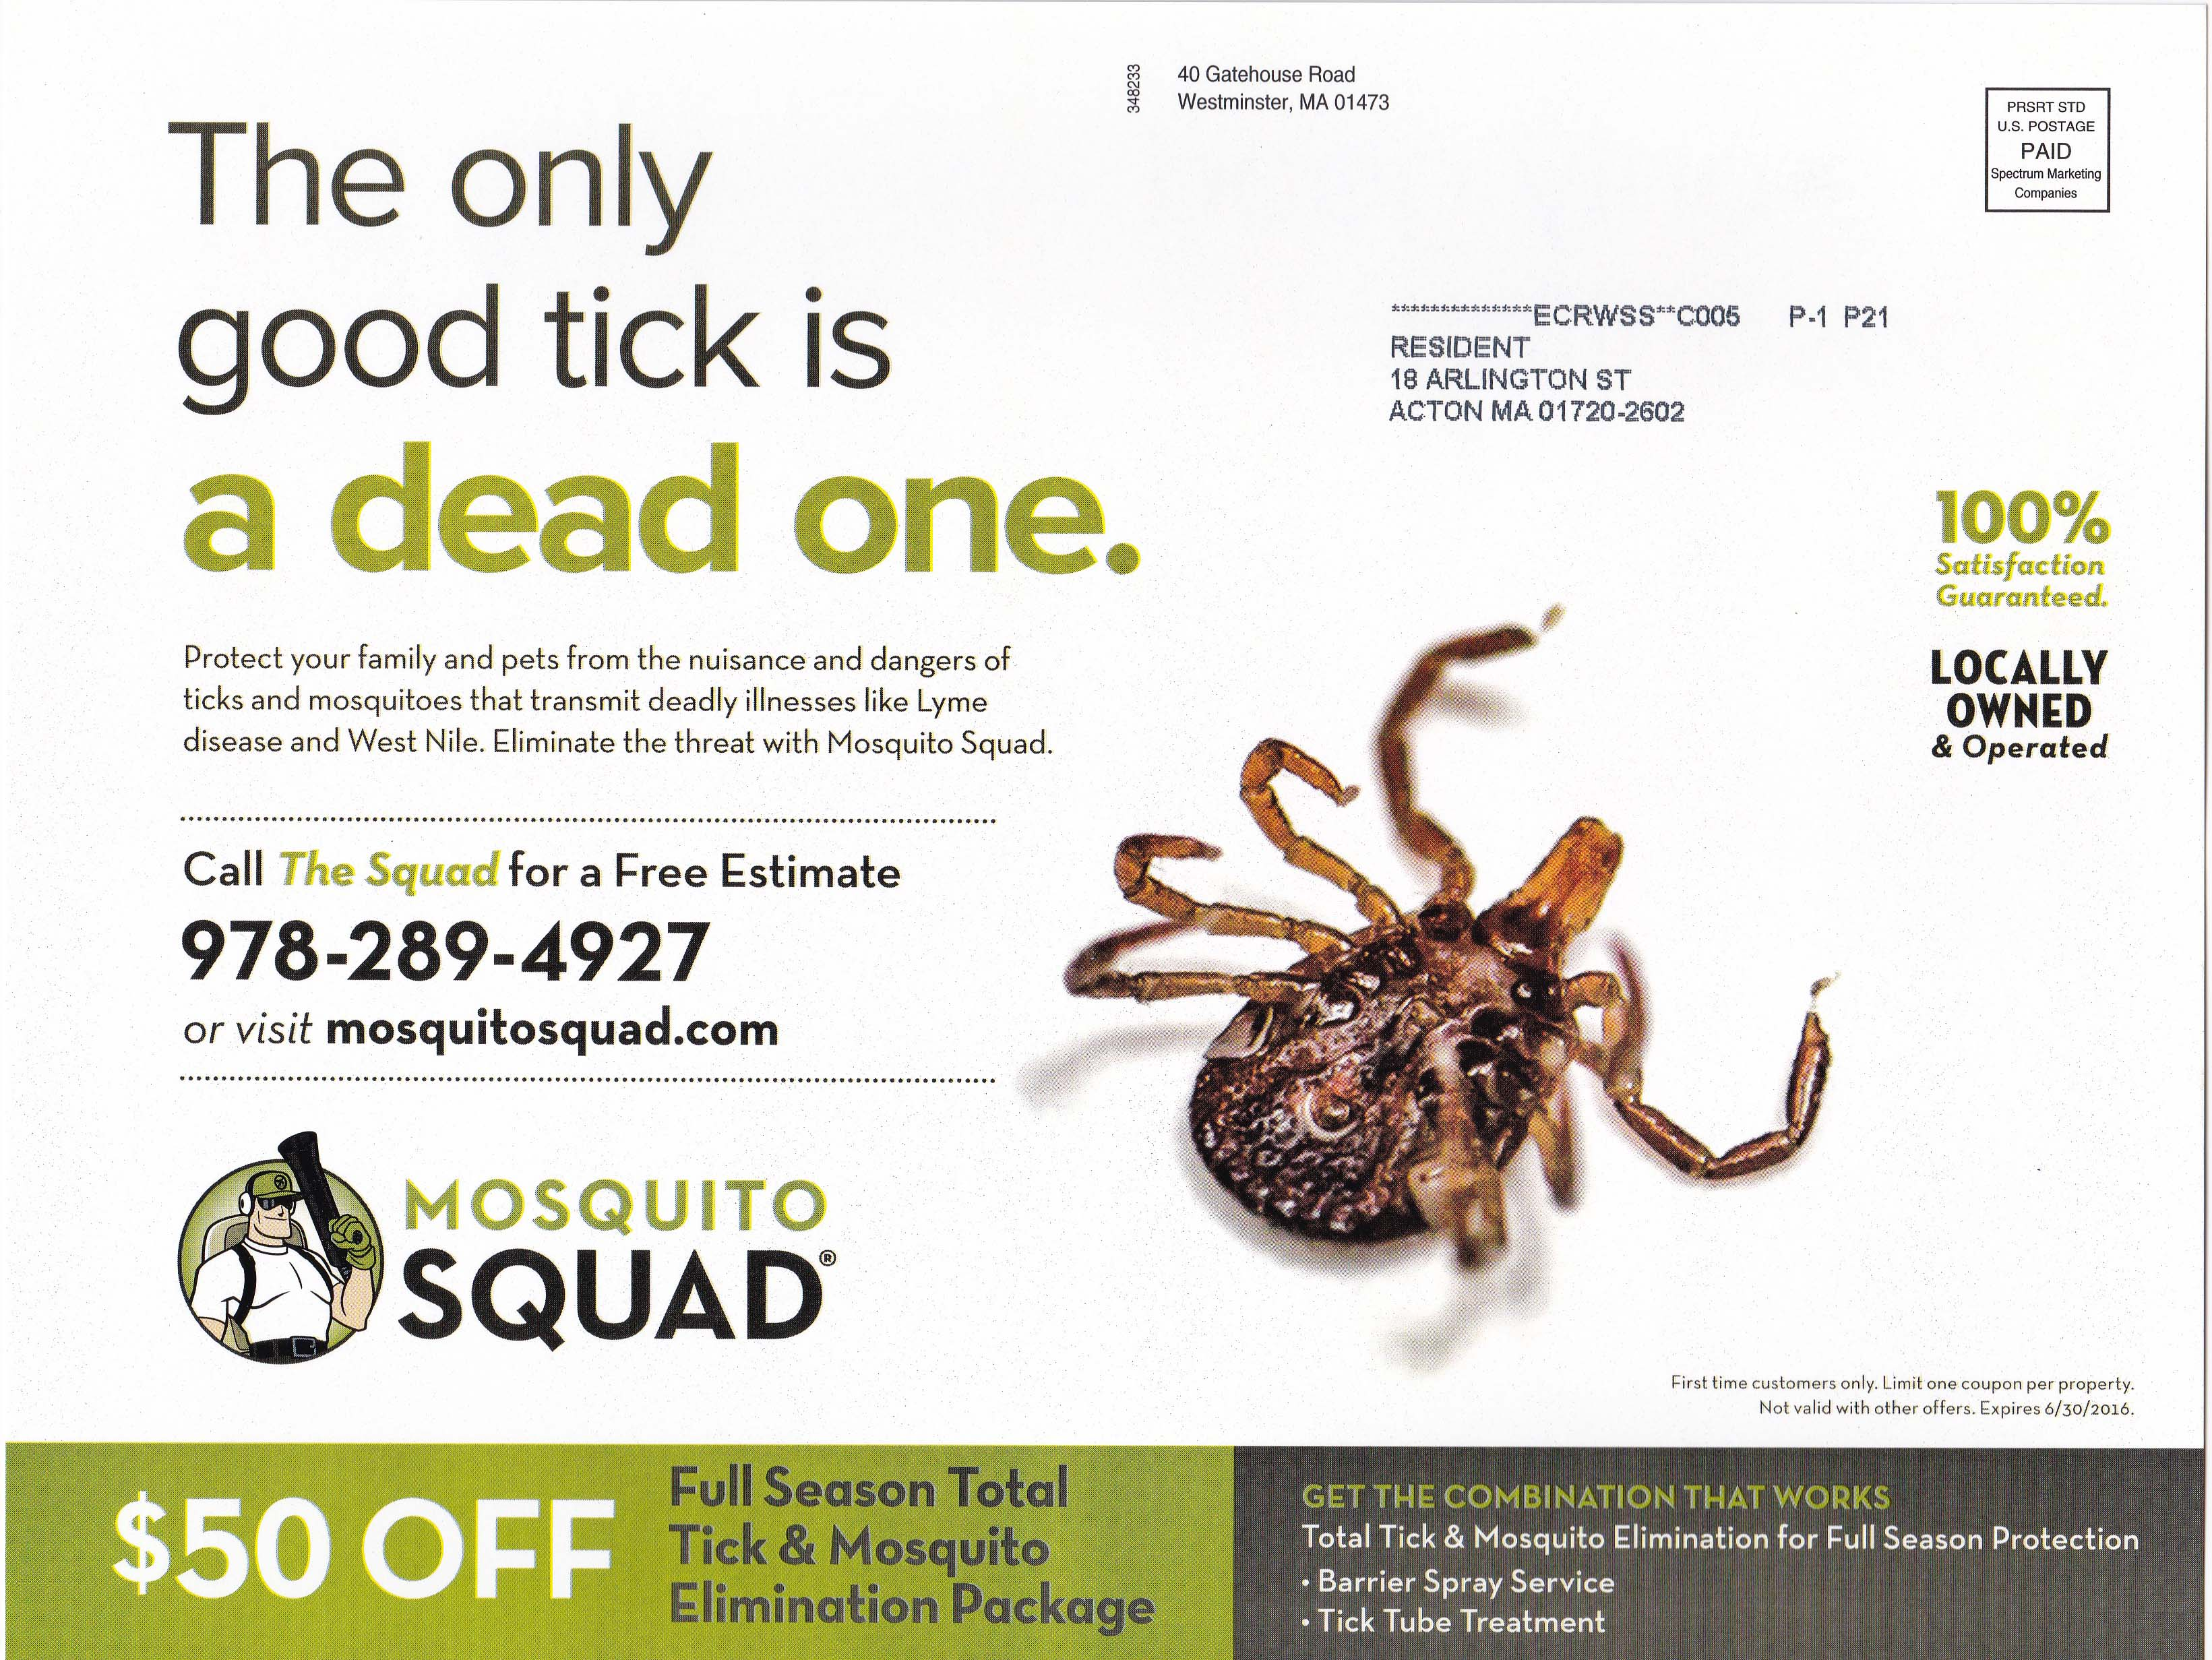 Mosquito Squad - Summer 2016 - Mailing 1 - Side 2